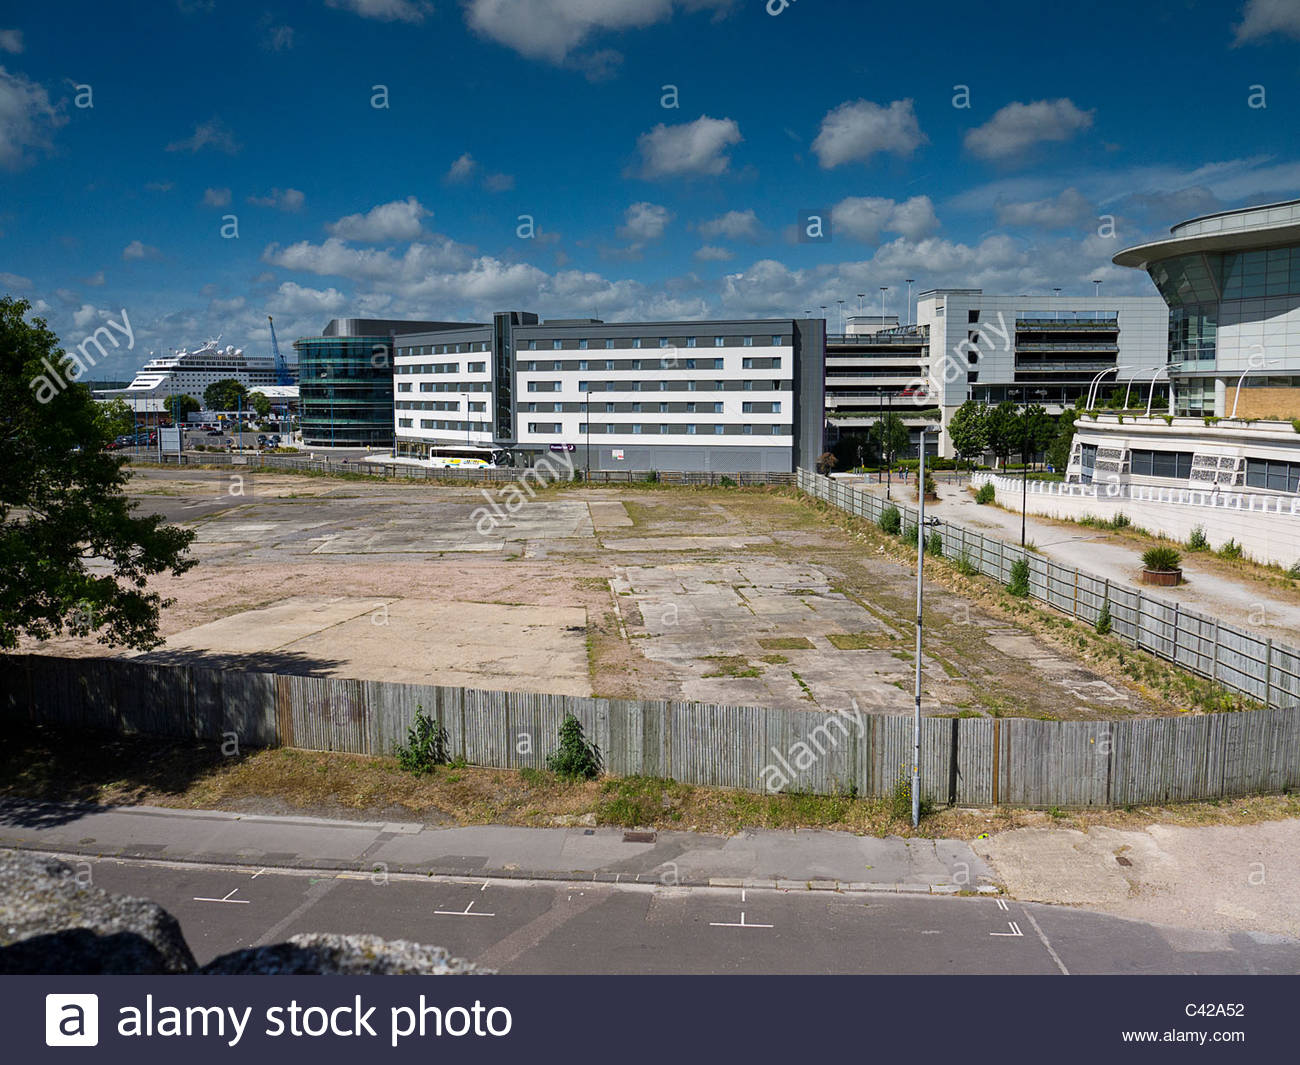 Southampton Quays Building Land in Waiting - Stock Image